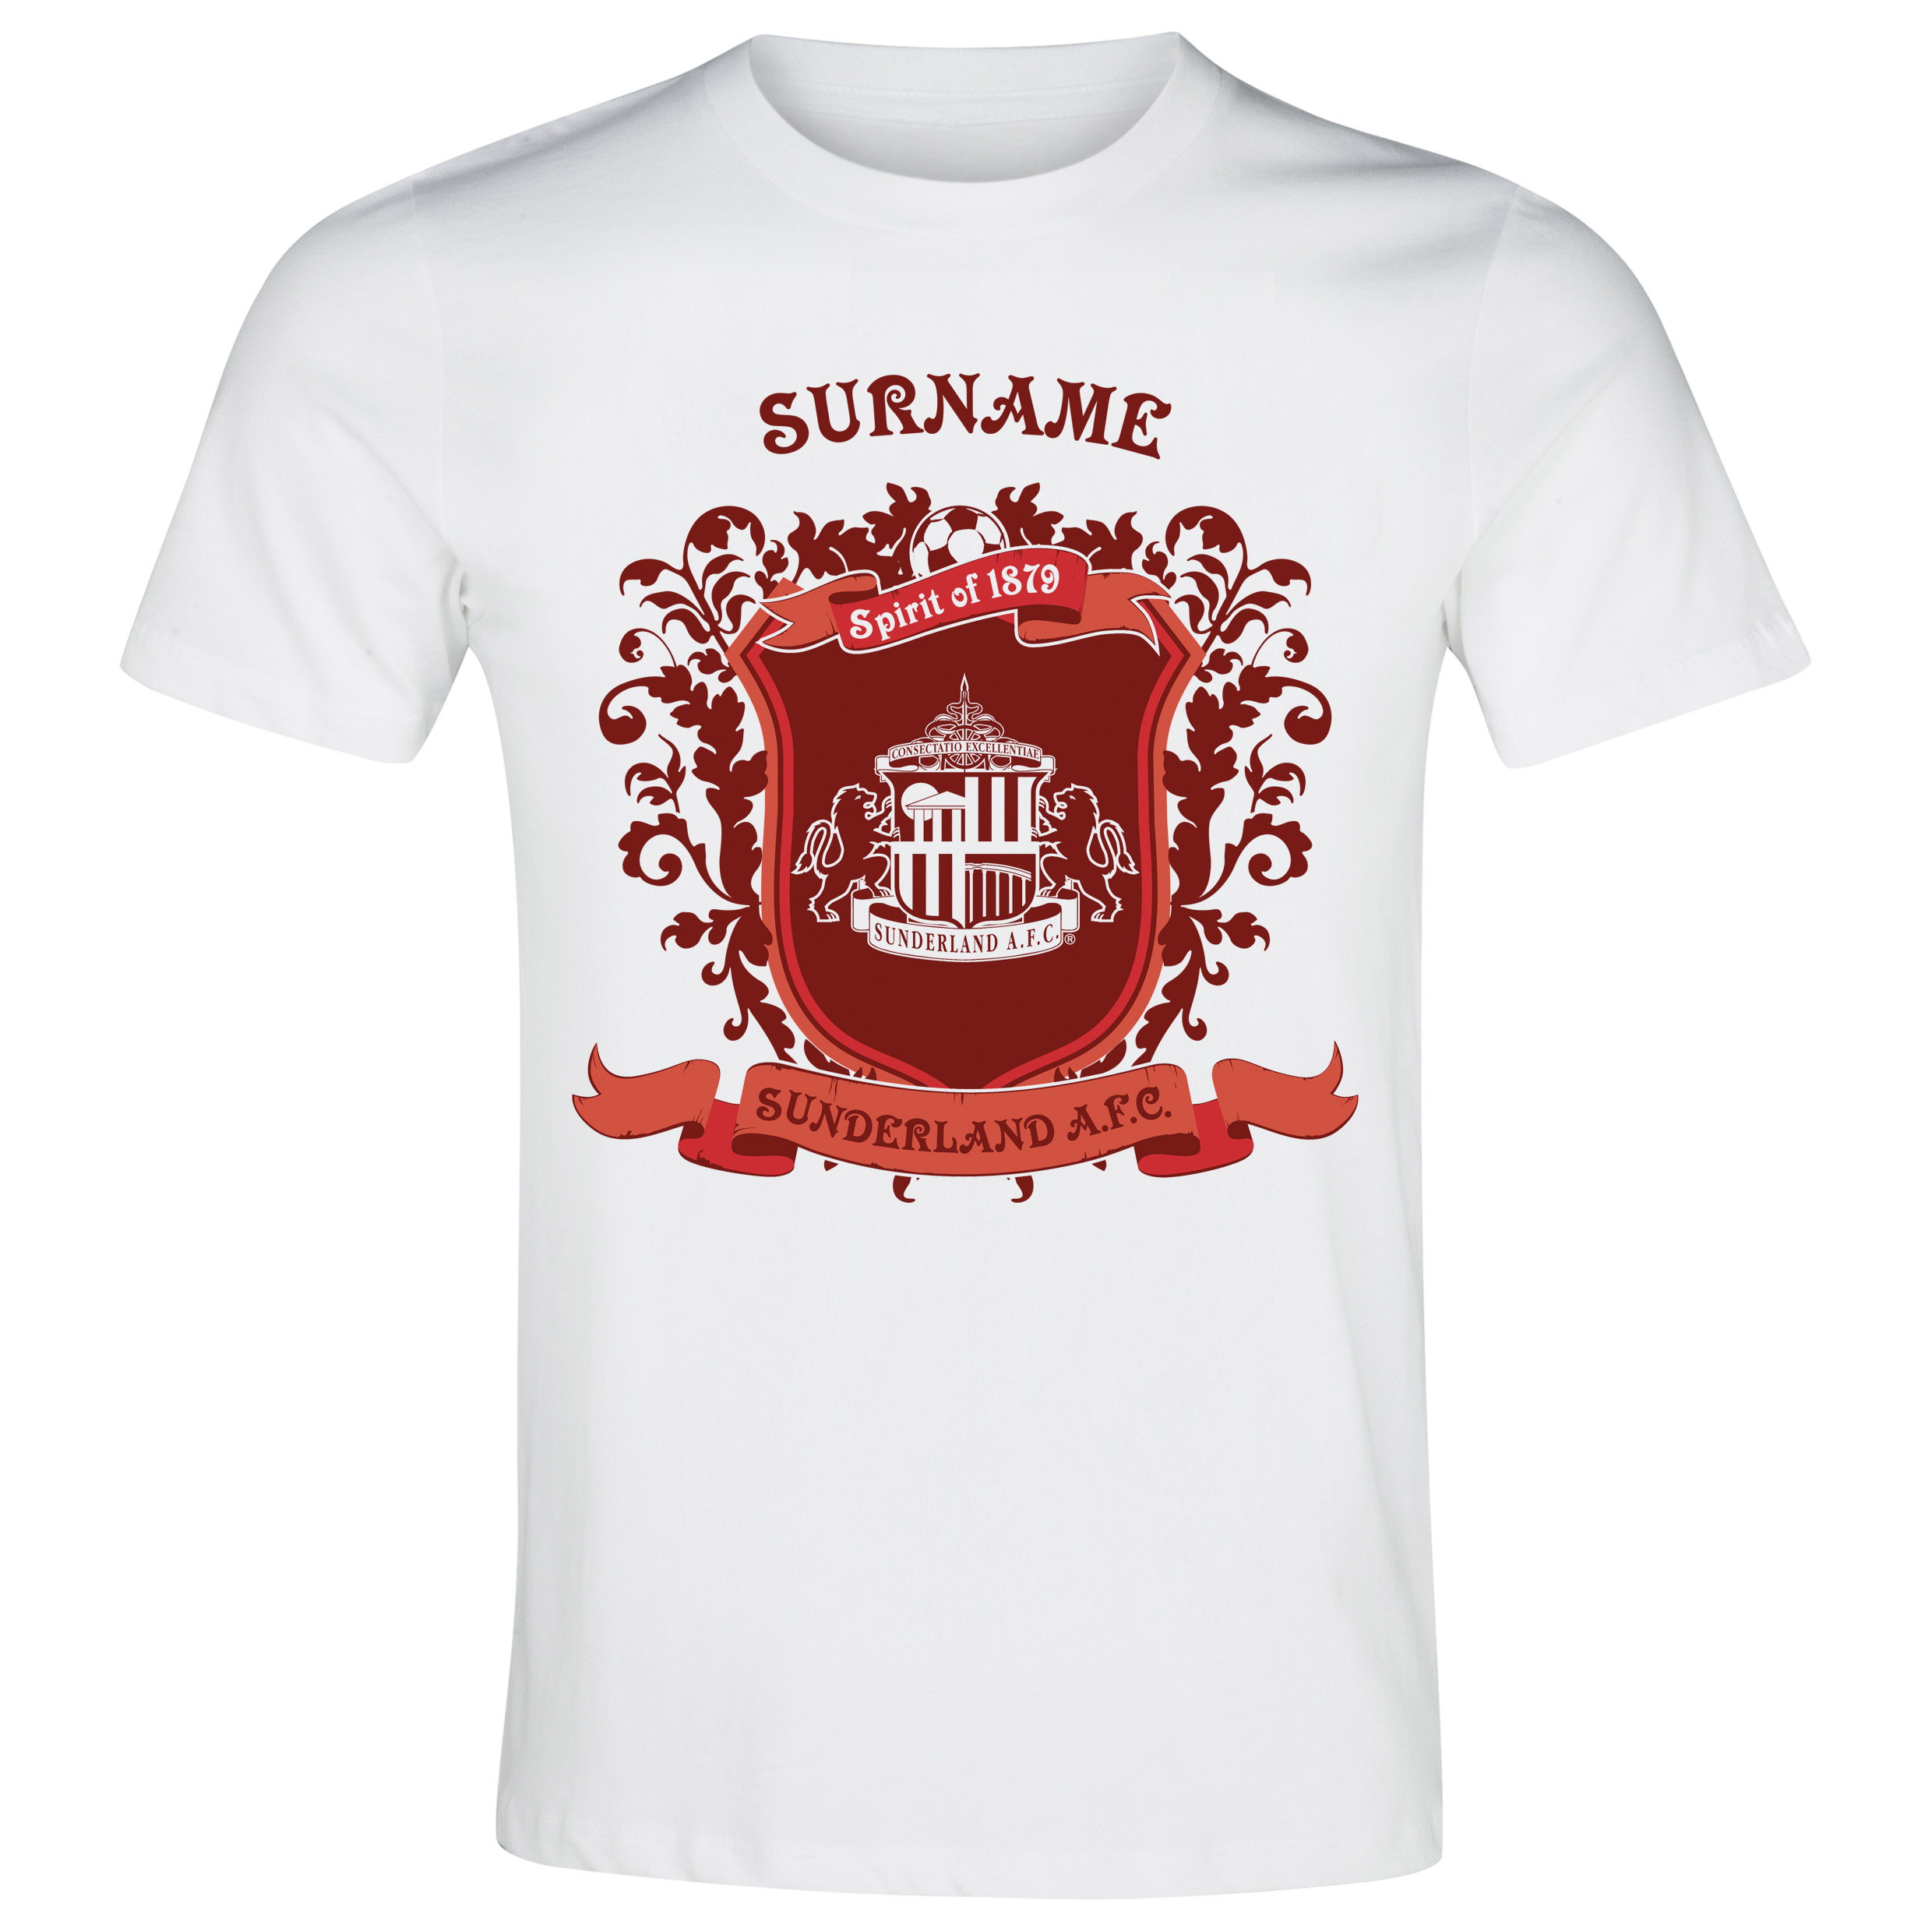 Sunderland Personalised Spirit of Sunderland T-Shirt